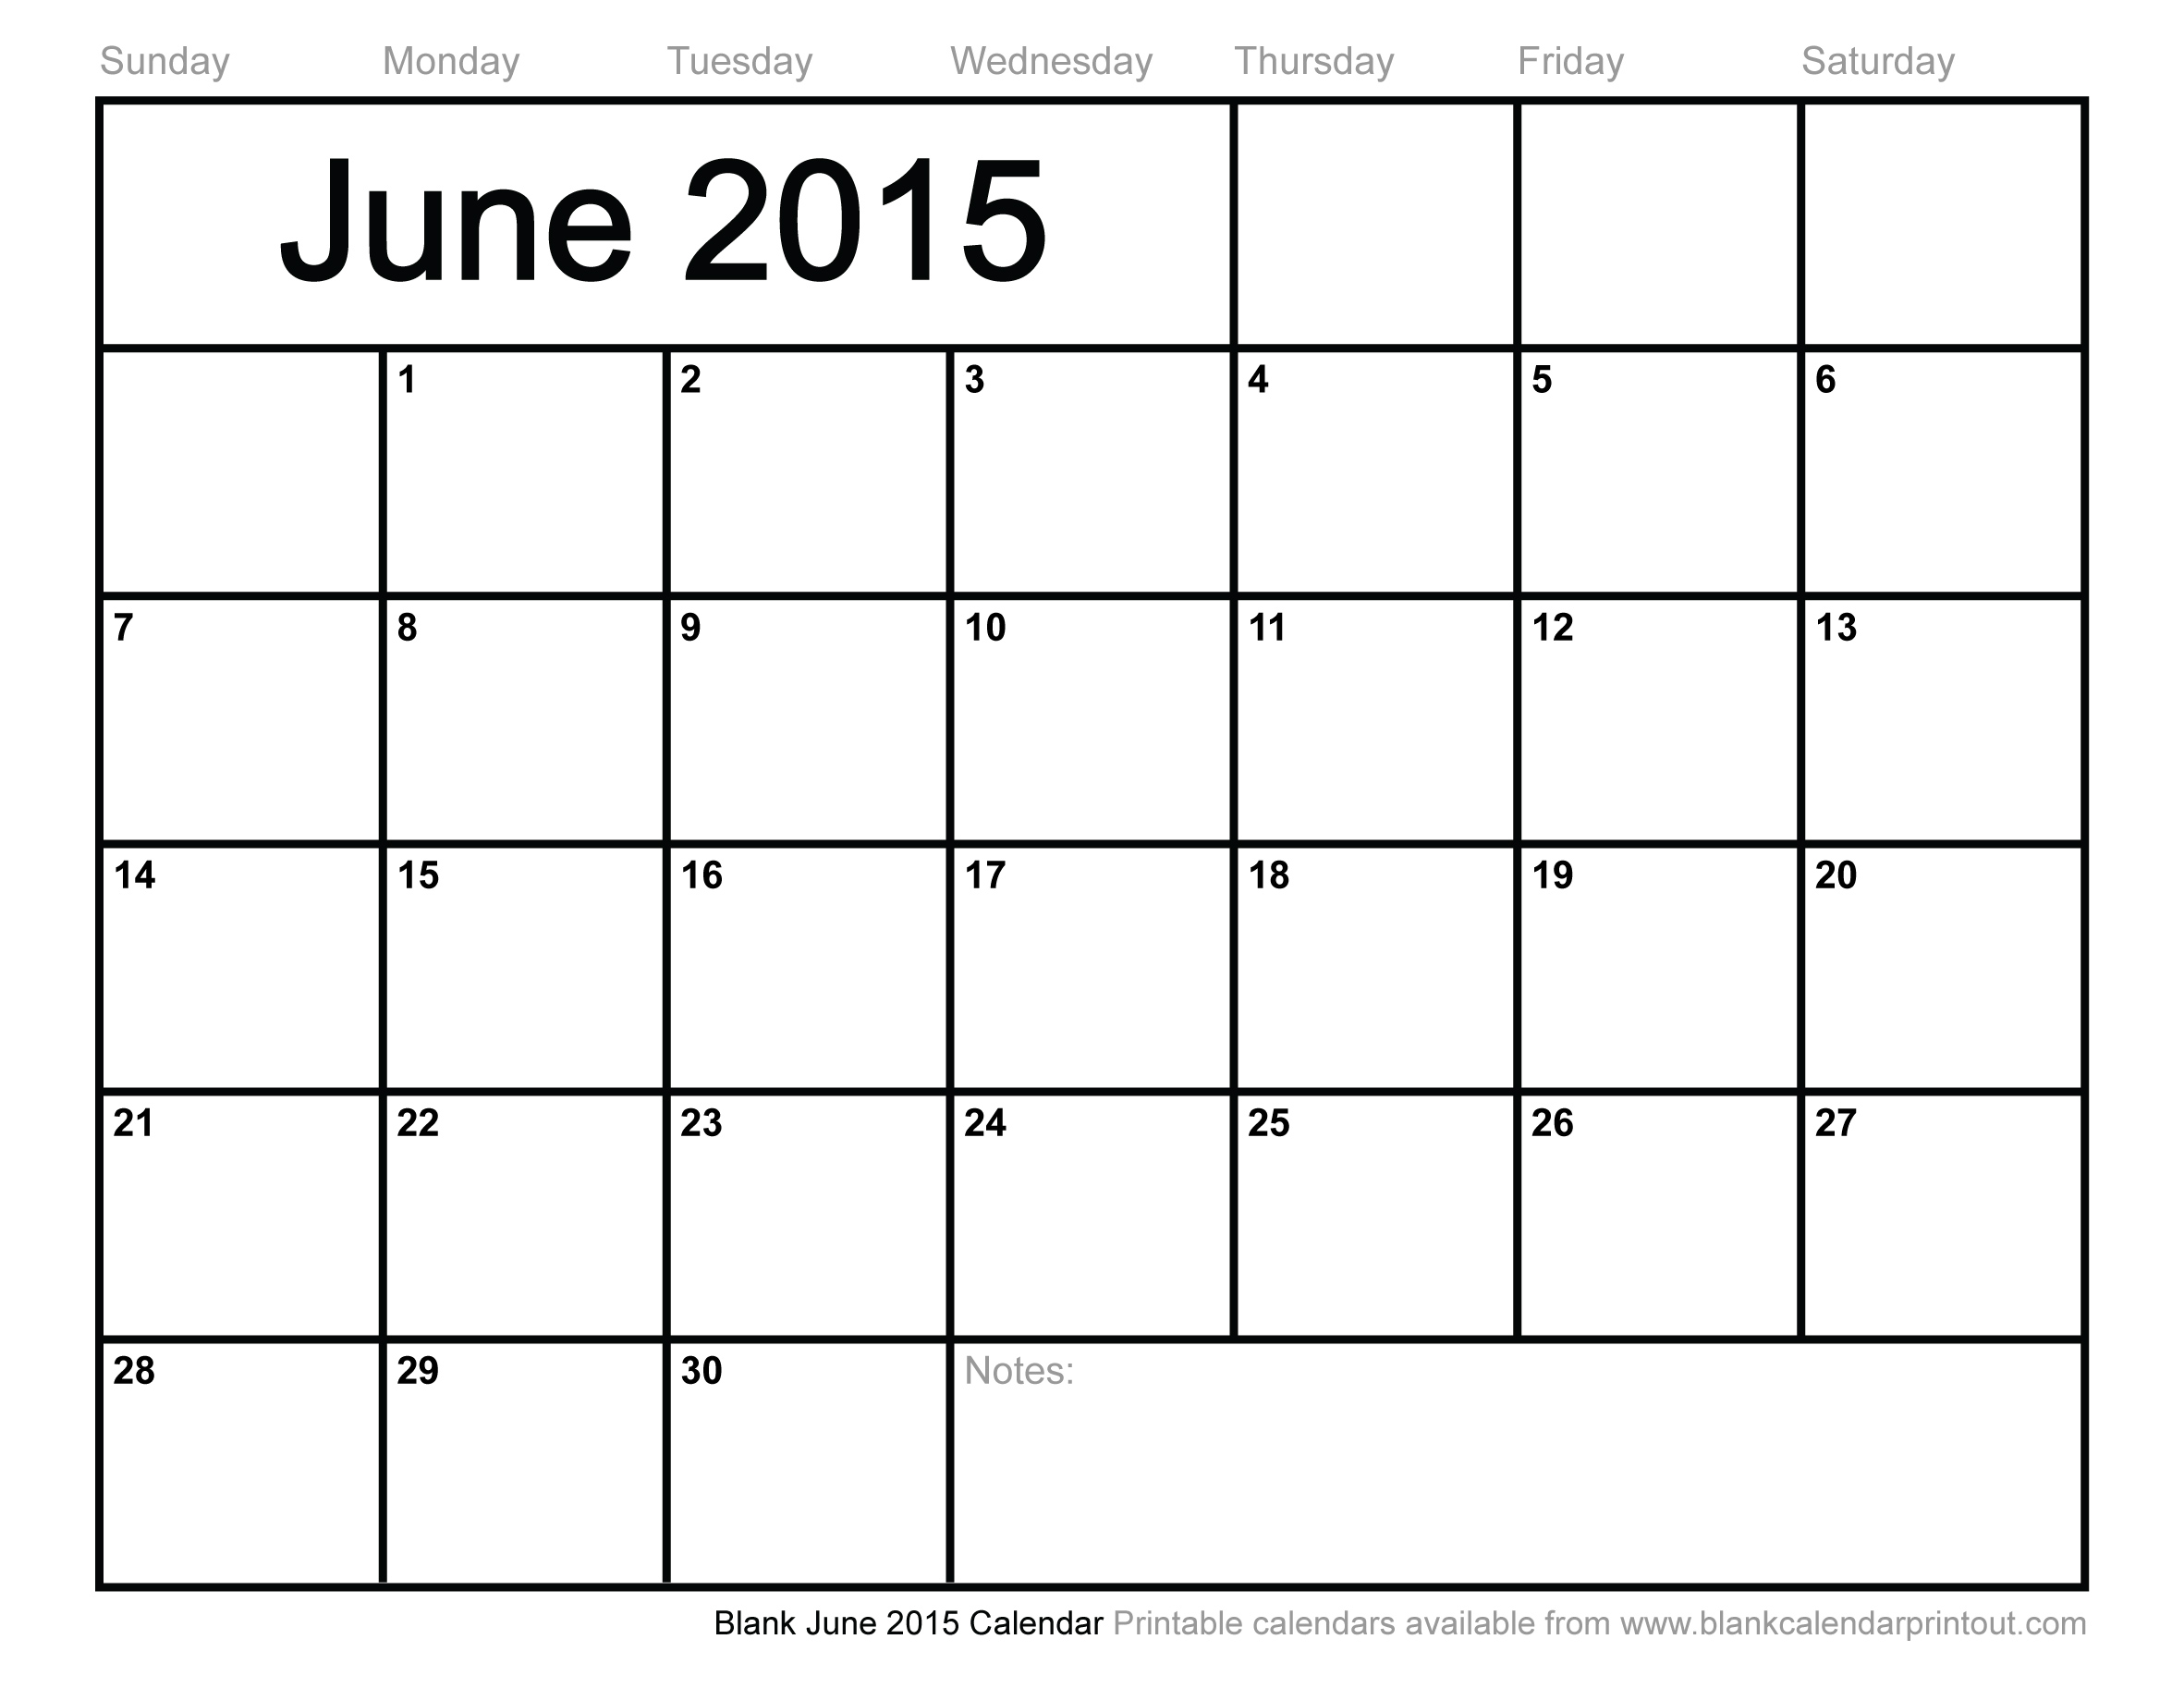 7 Images of Blank June 2015 Calendar Printable